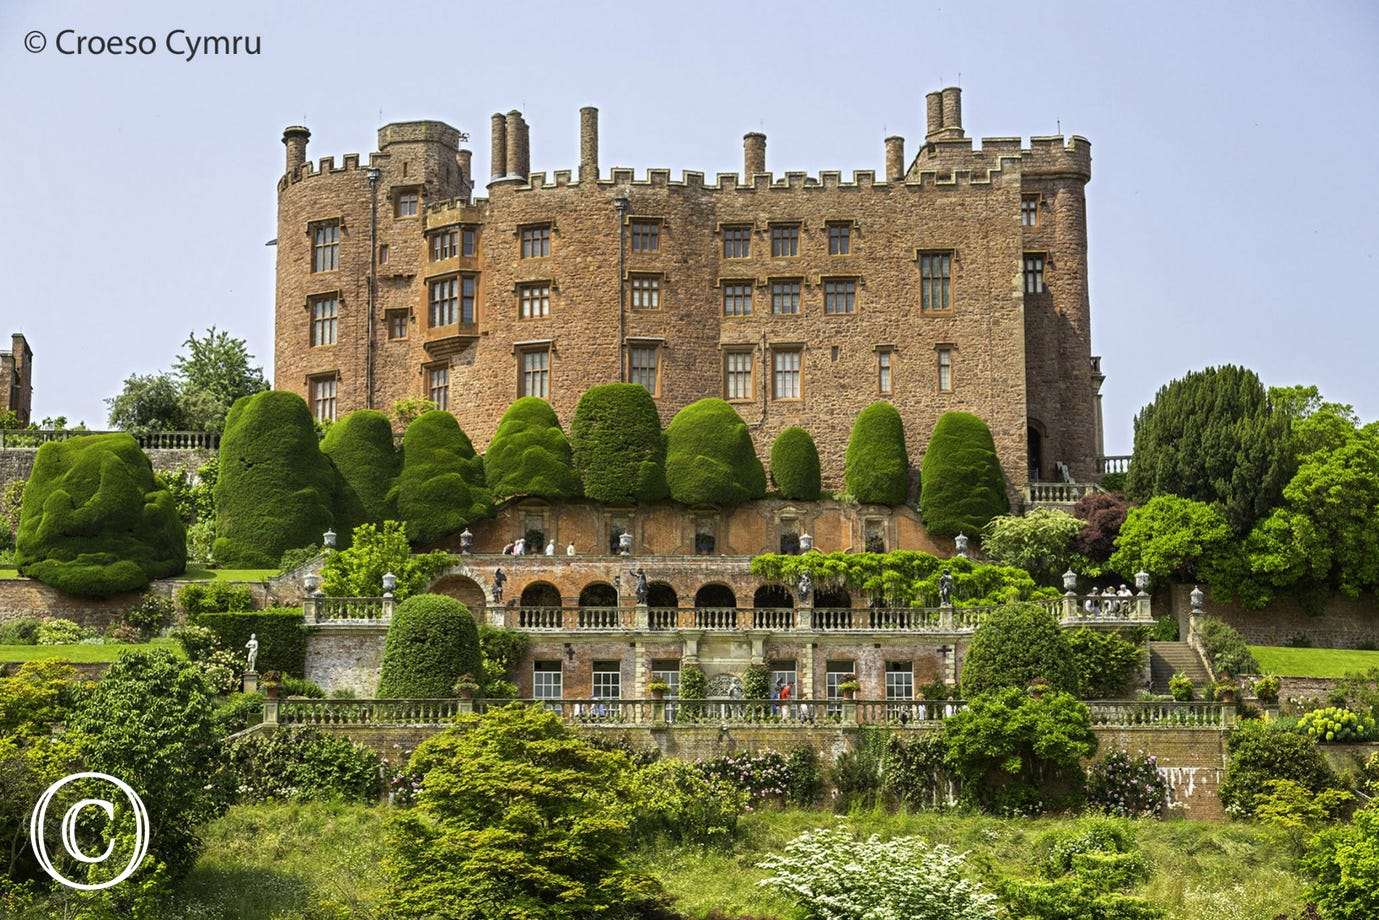 Powis Castle and Gardens (10.5 miles)